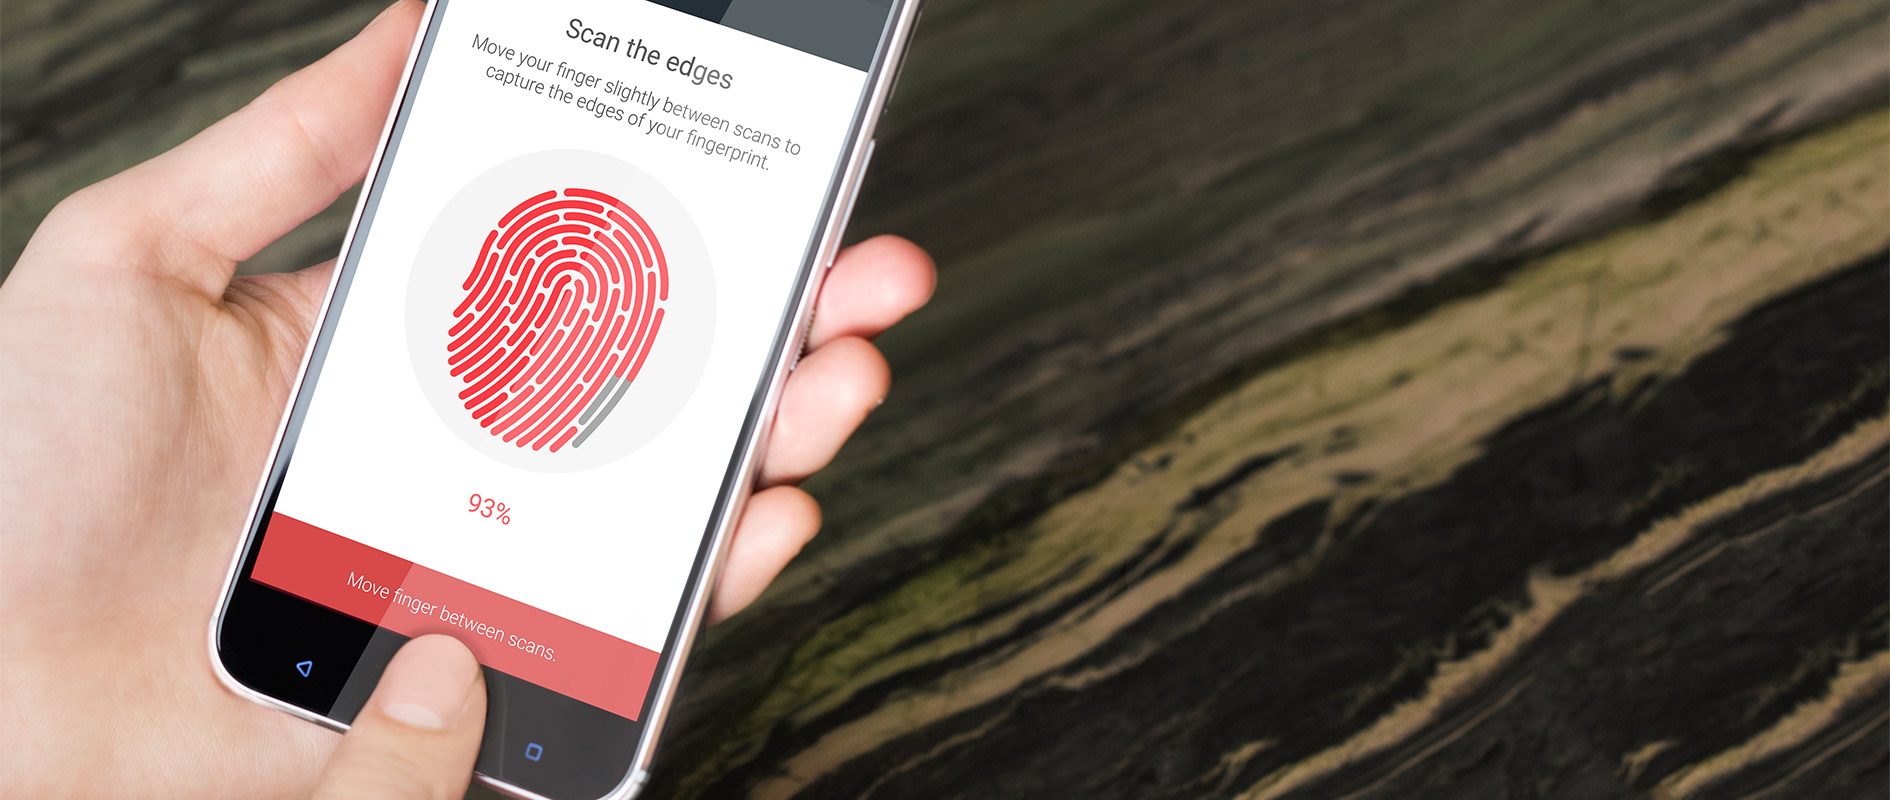 HTC 10 fingerprint scanner